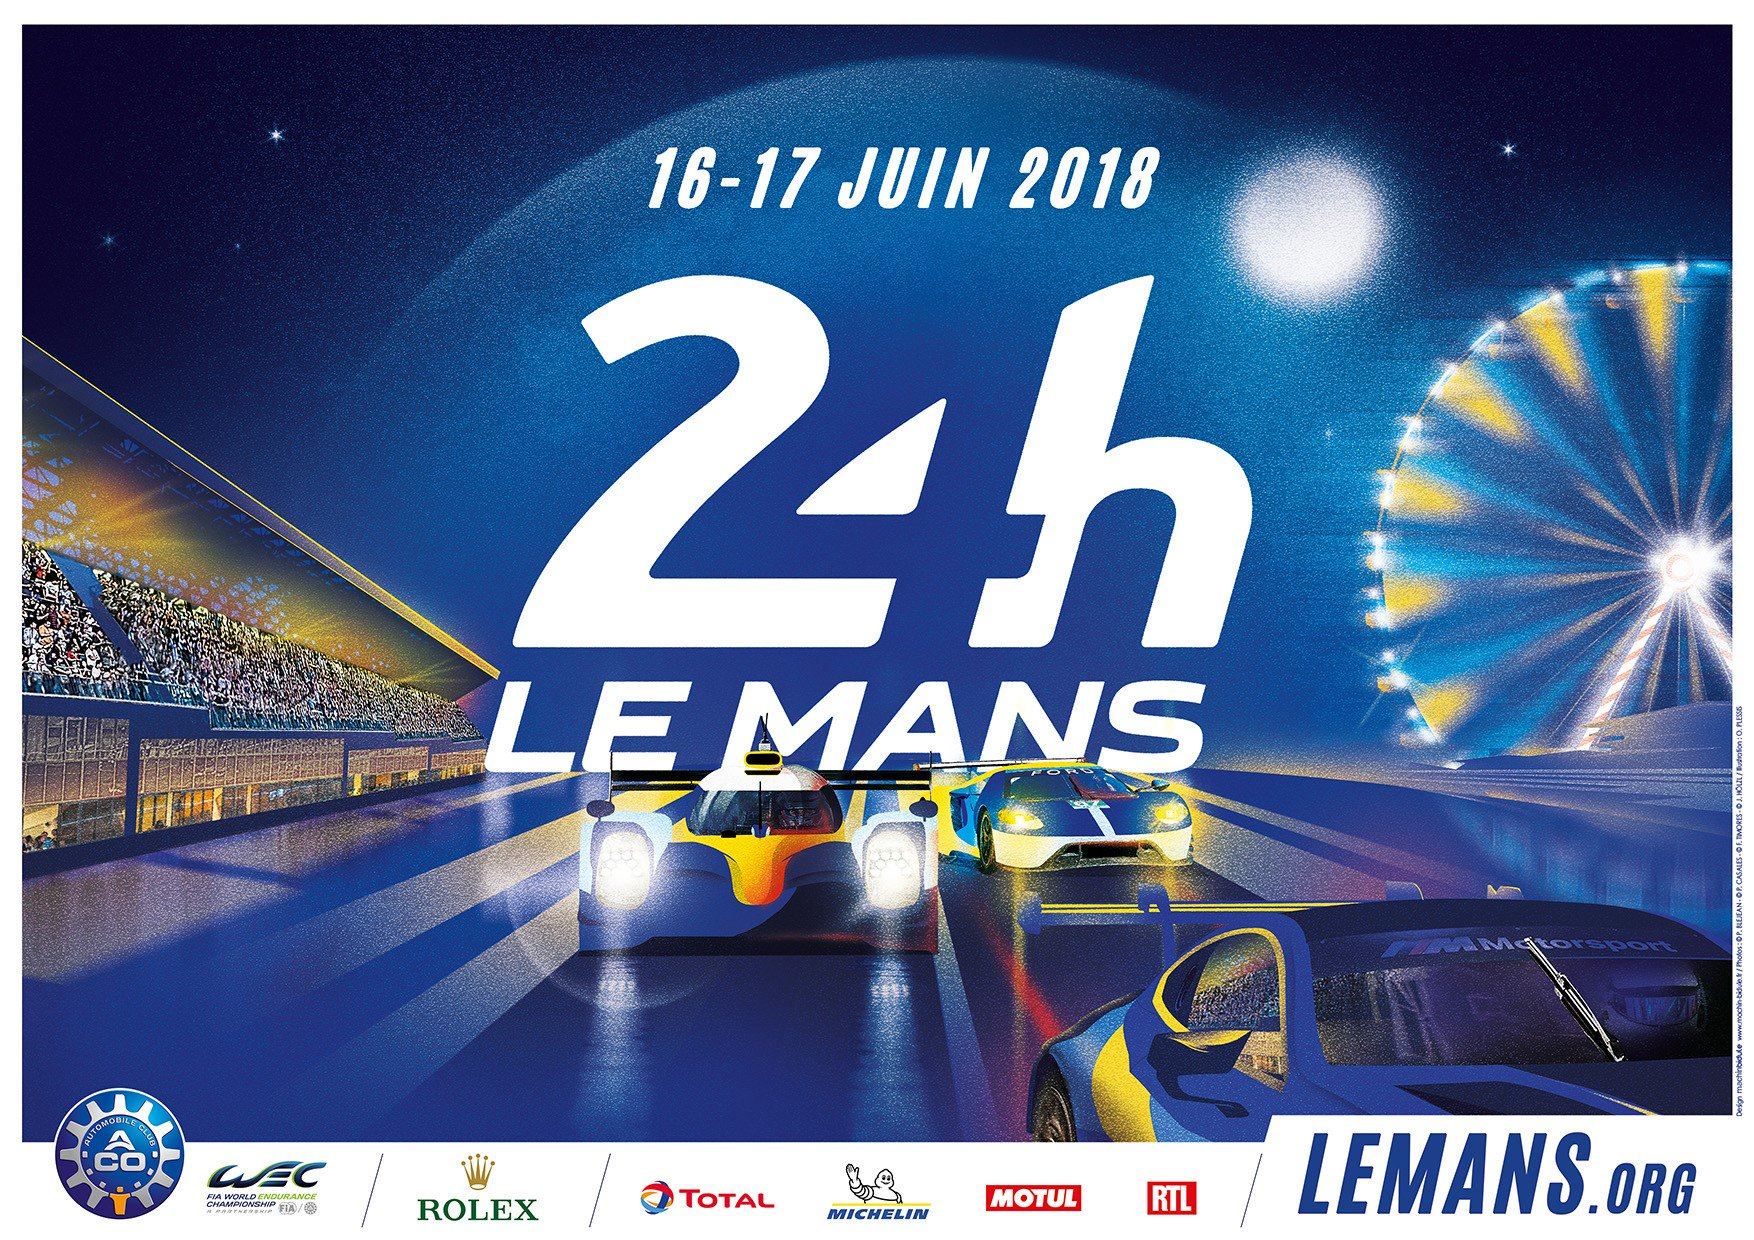 Michelin targeting a 21st Le Mans victory